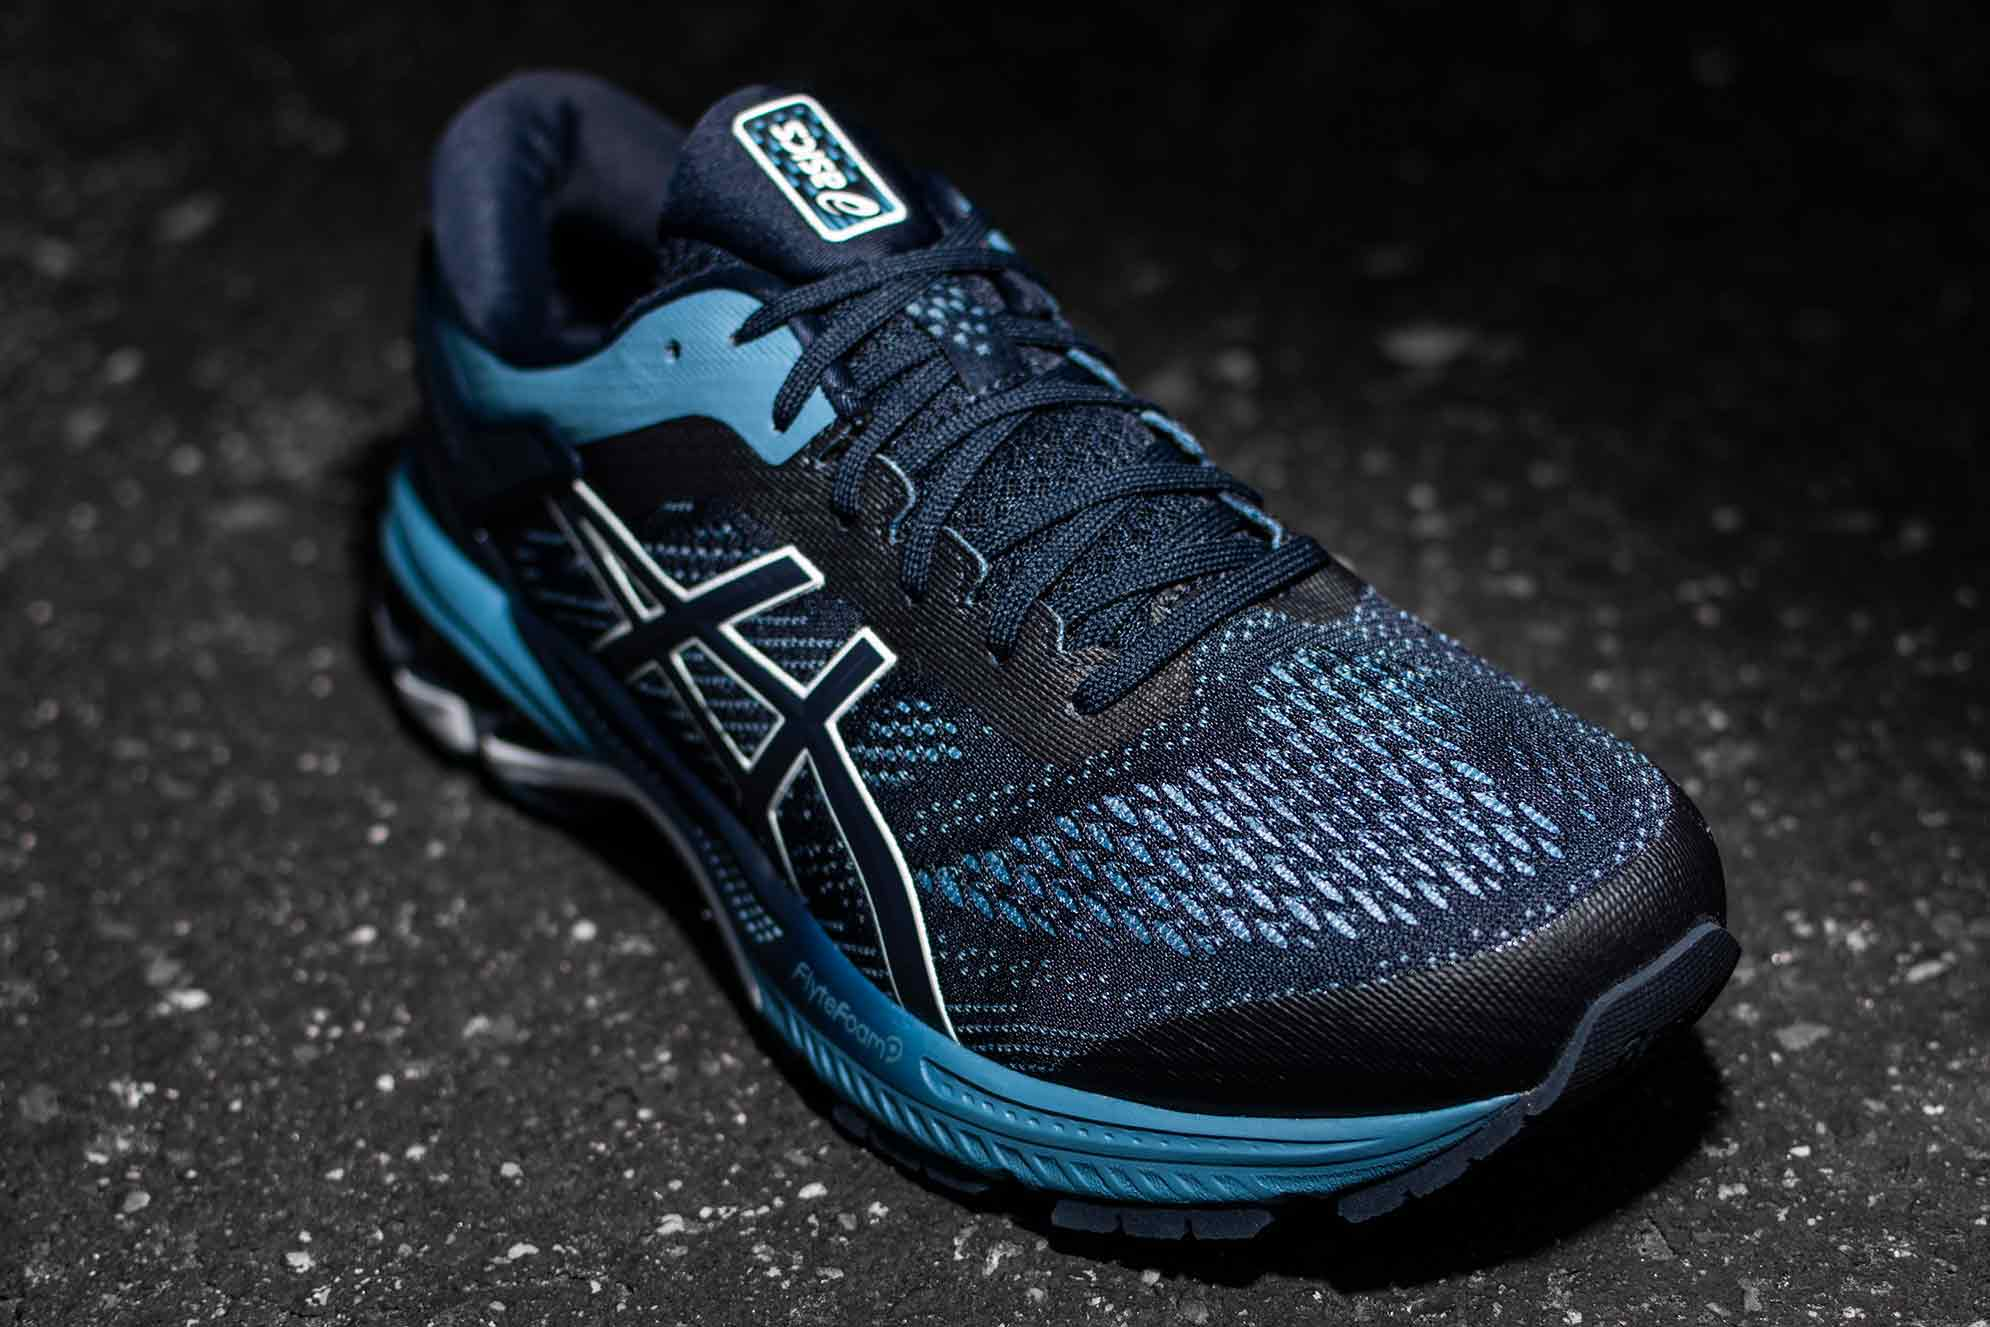 check out 8ef86 3797d ASICS GEL-Kayano 26 Running Shoes Preview – Holabird Sports